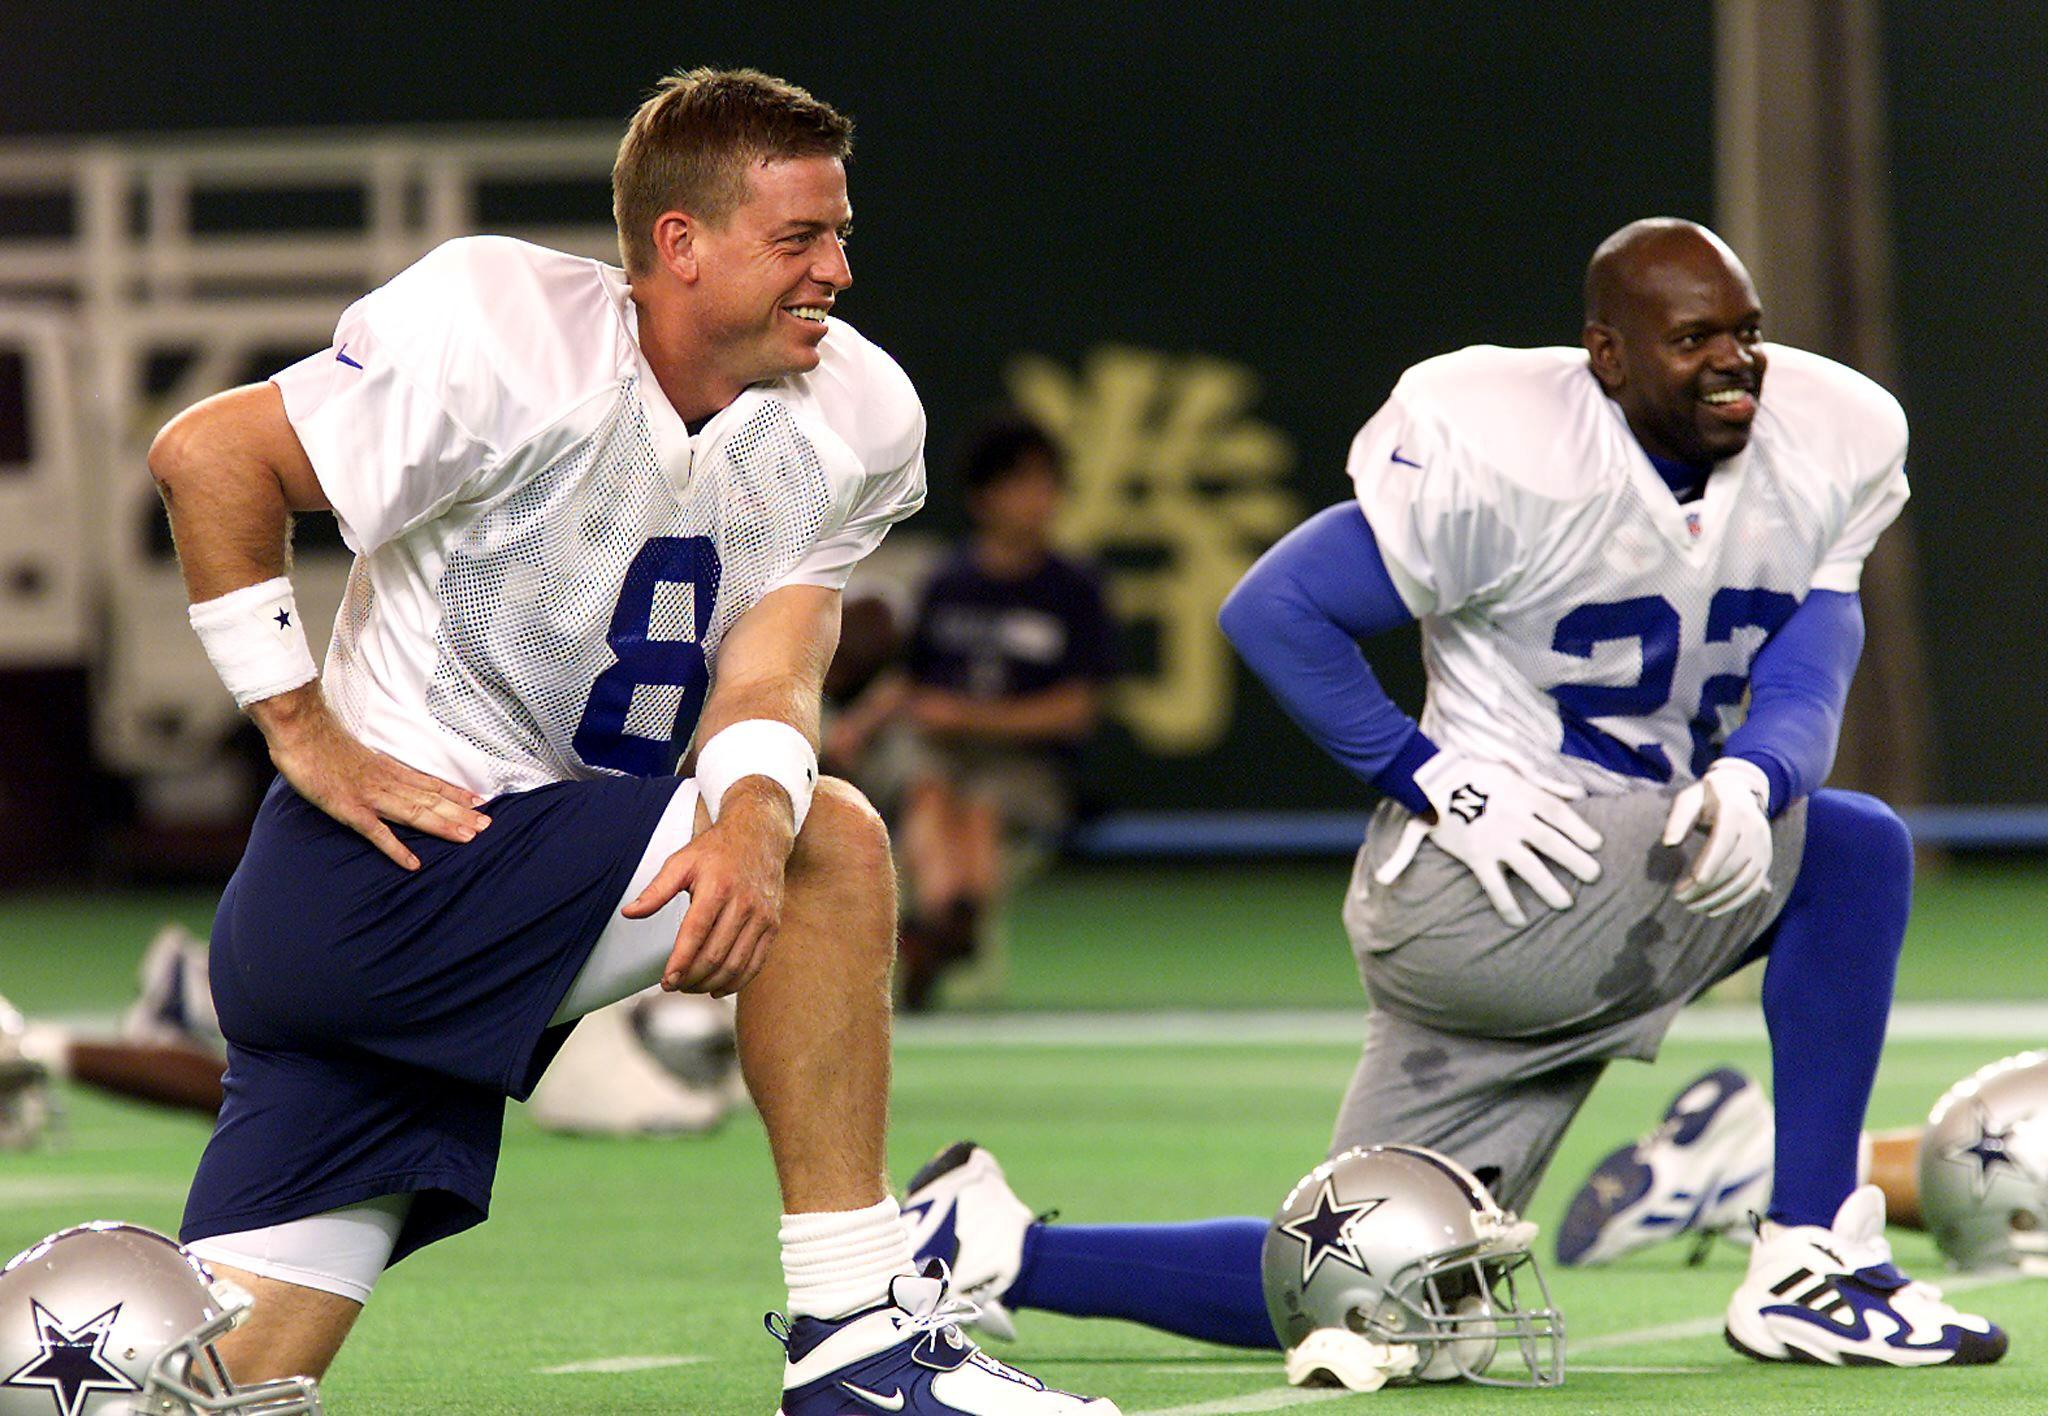 Troy Aikman and Emmitt Smith might be the greatest Cowboys of all time, but they aren't the highest-paid players in franchise history.